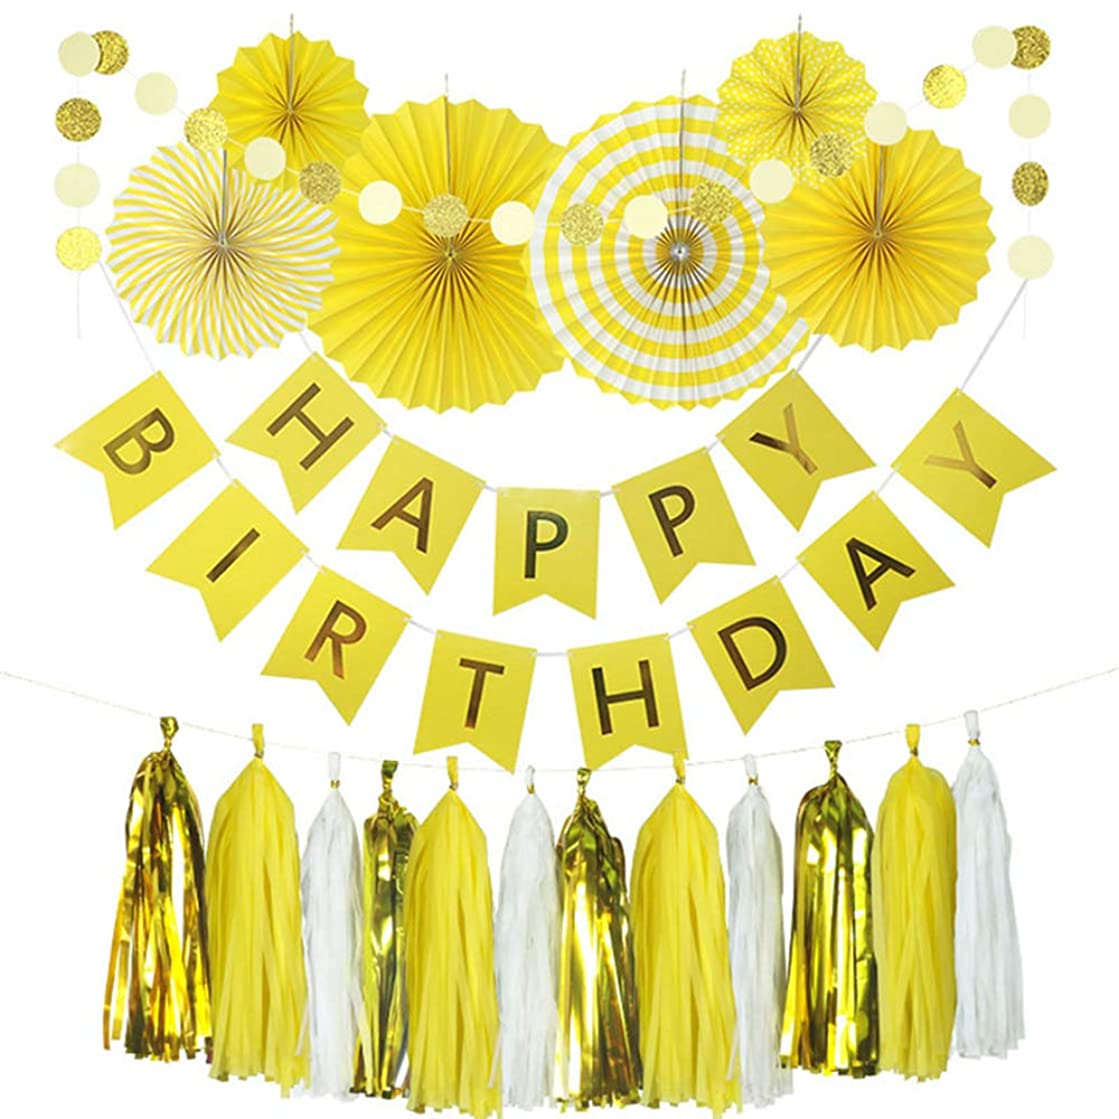 Keke's Home Creative Yellow Happy Birthday Paper Garland Wall Banner, Paper Fan Flower,Tissue Tassel Garland, Polka Dot Garland Kit, Party Decorations for Girl and Boy Birthday (Yellow)